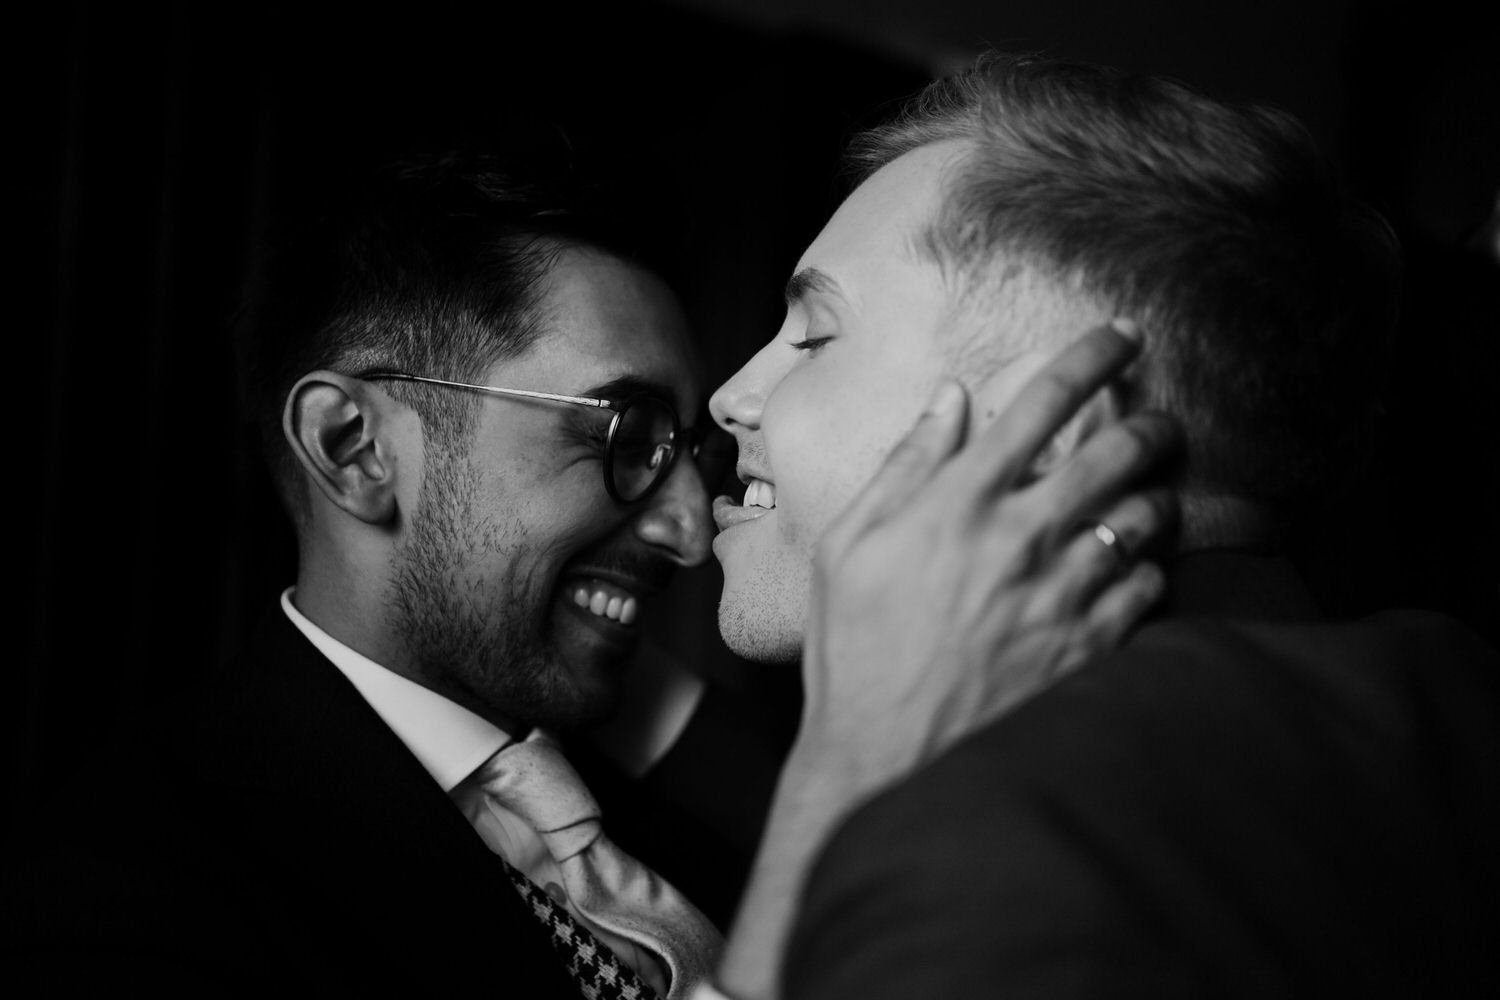 Same sex weddings at BoHo Cornwall elopements as two groom kiss each other on the nose